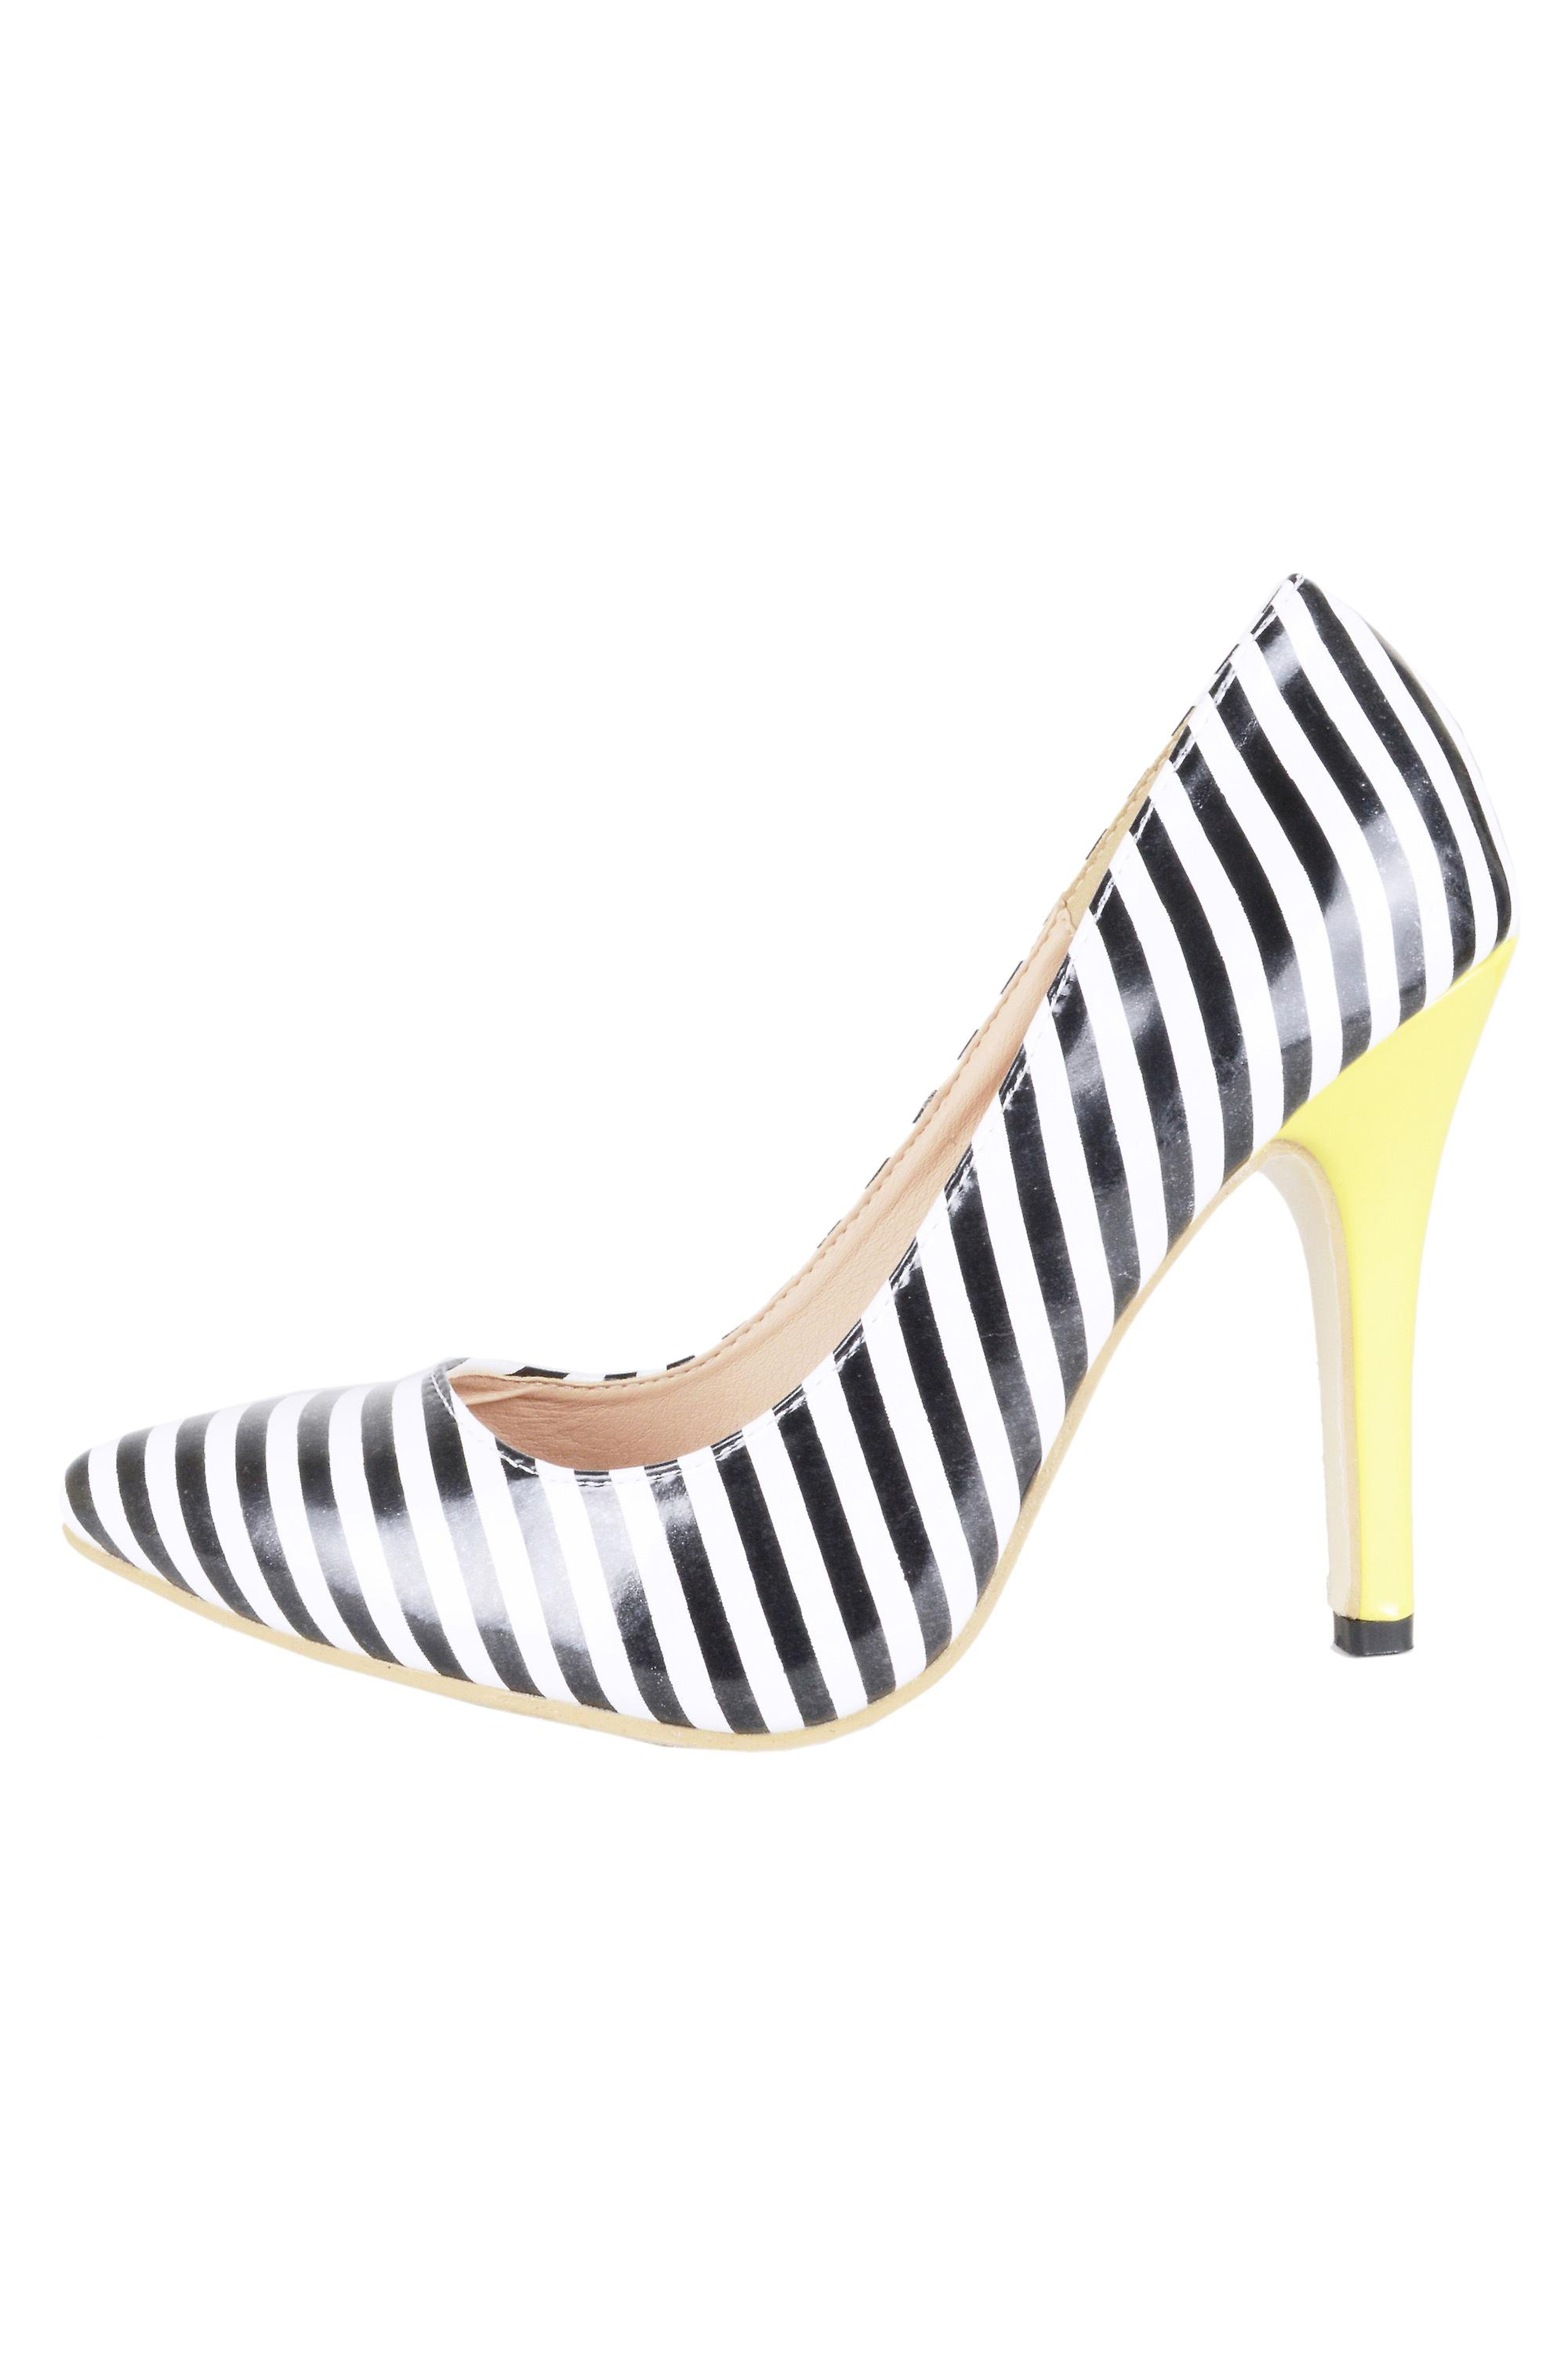 Lovemystyle Black And White Stripe Court Shoes With Yellow Heel